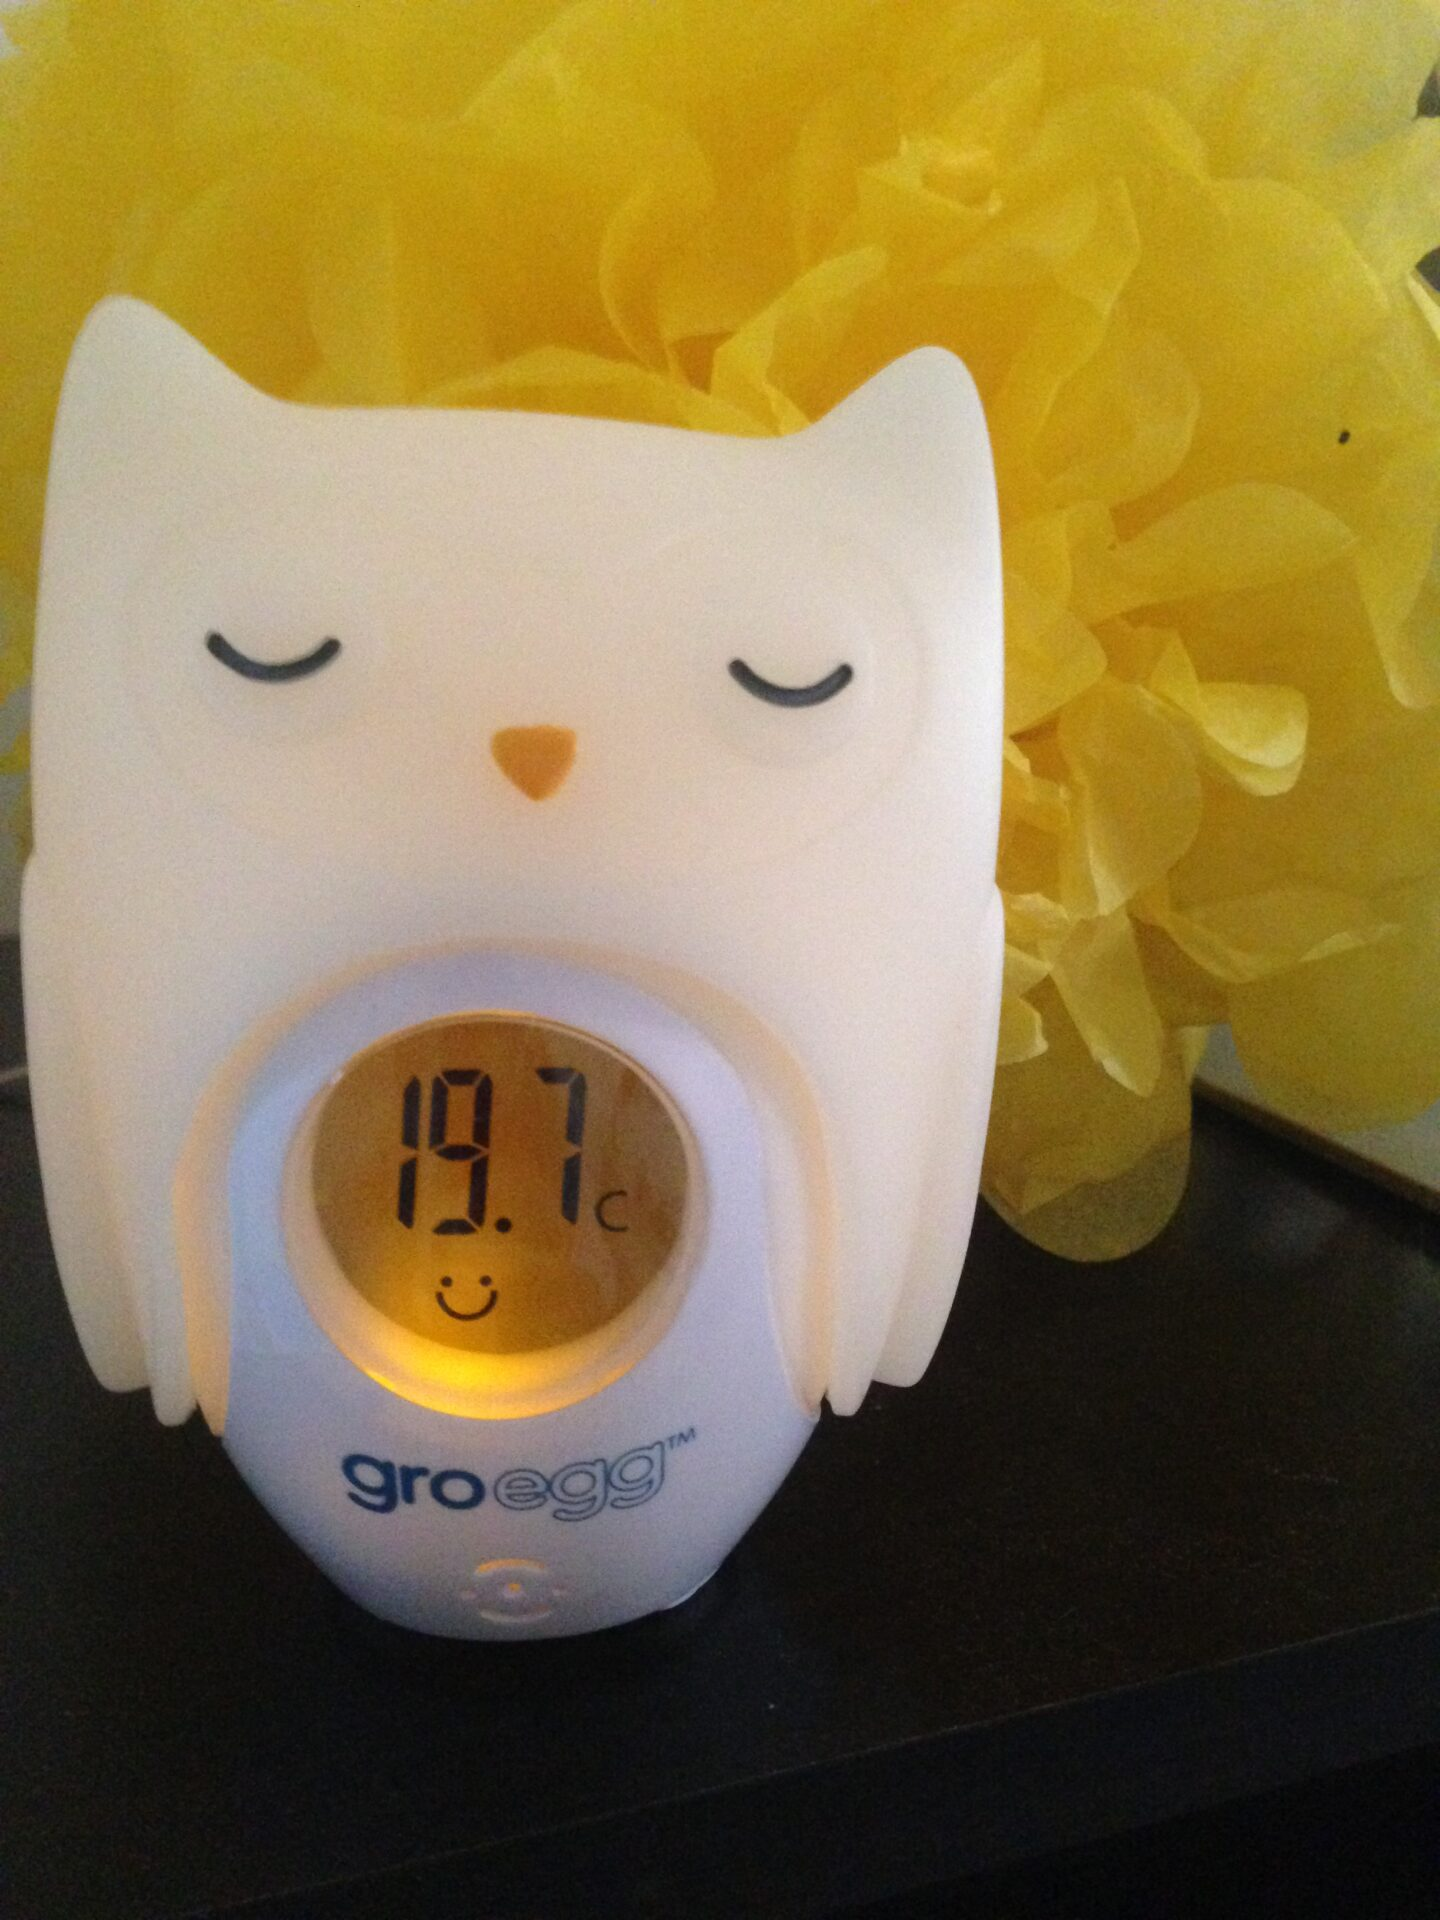 Lottie Loves: Gro-egg Room Thermometer